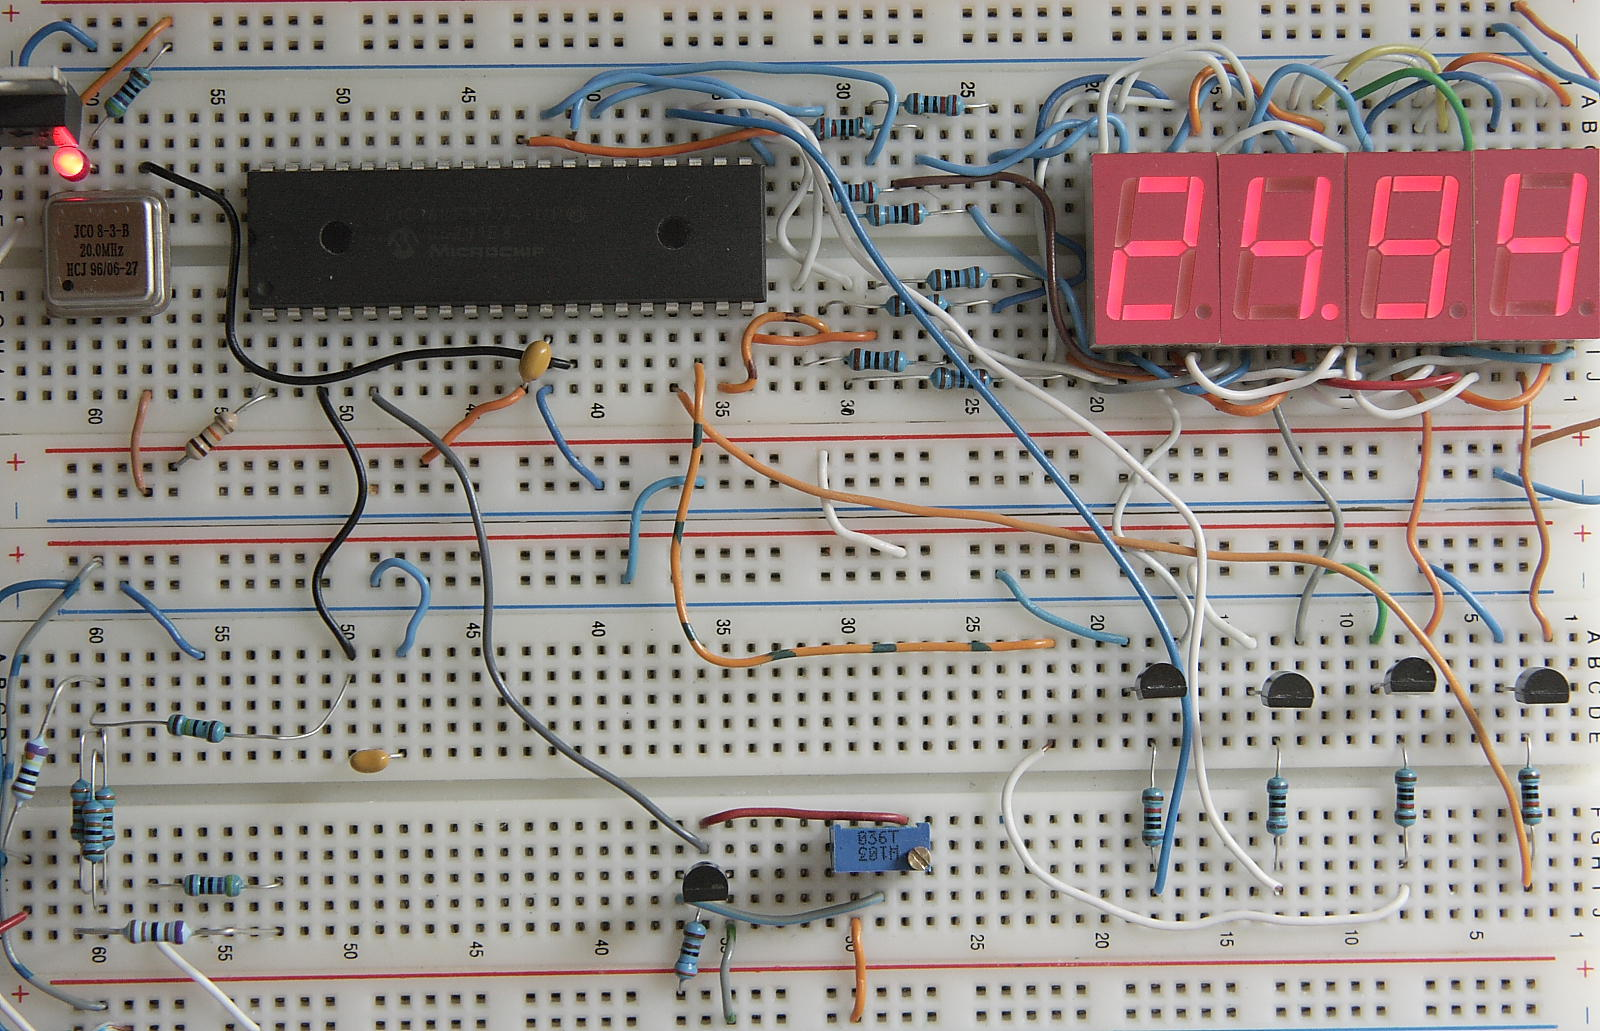 Digital Voltmeter Led Display Circuit Prototype Board